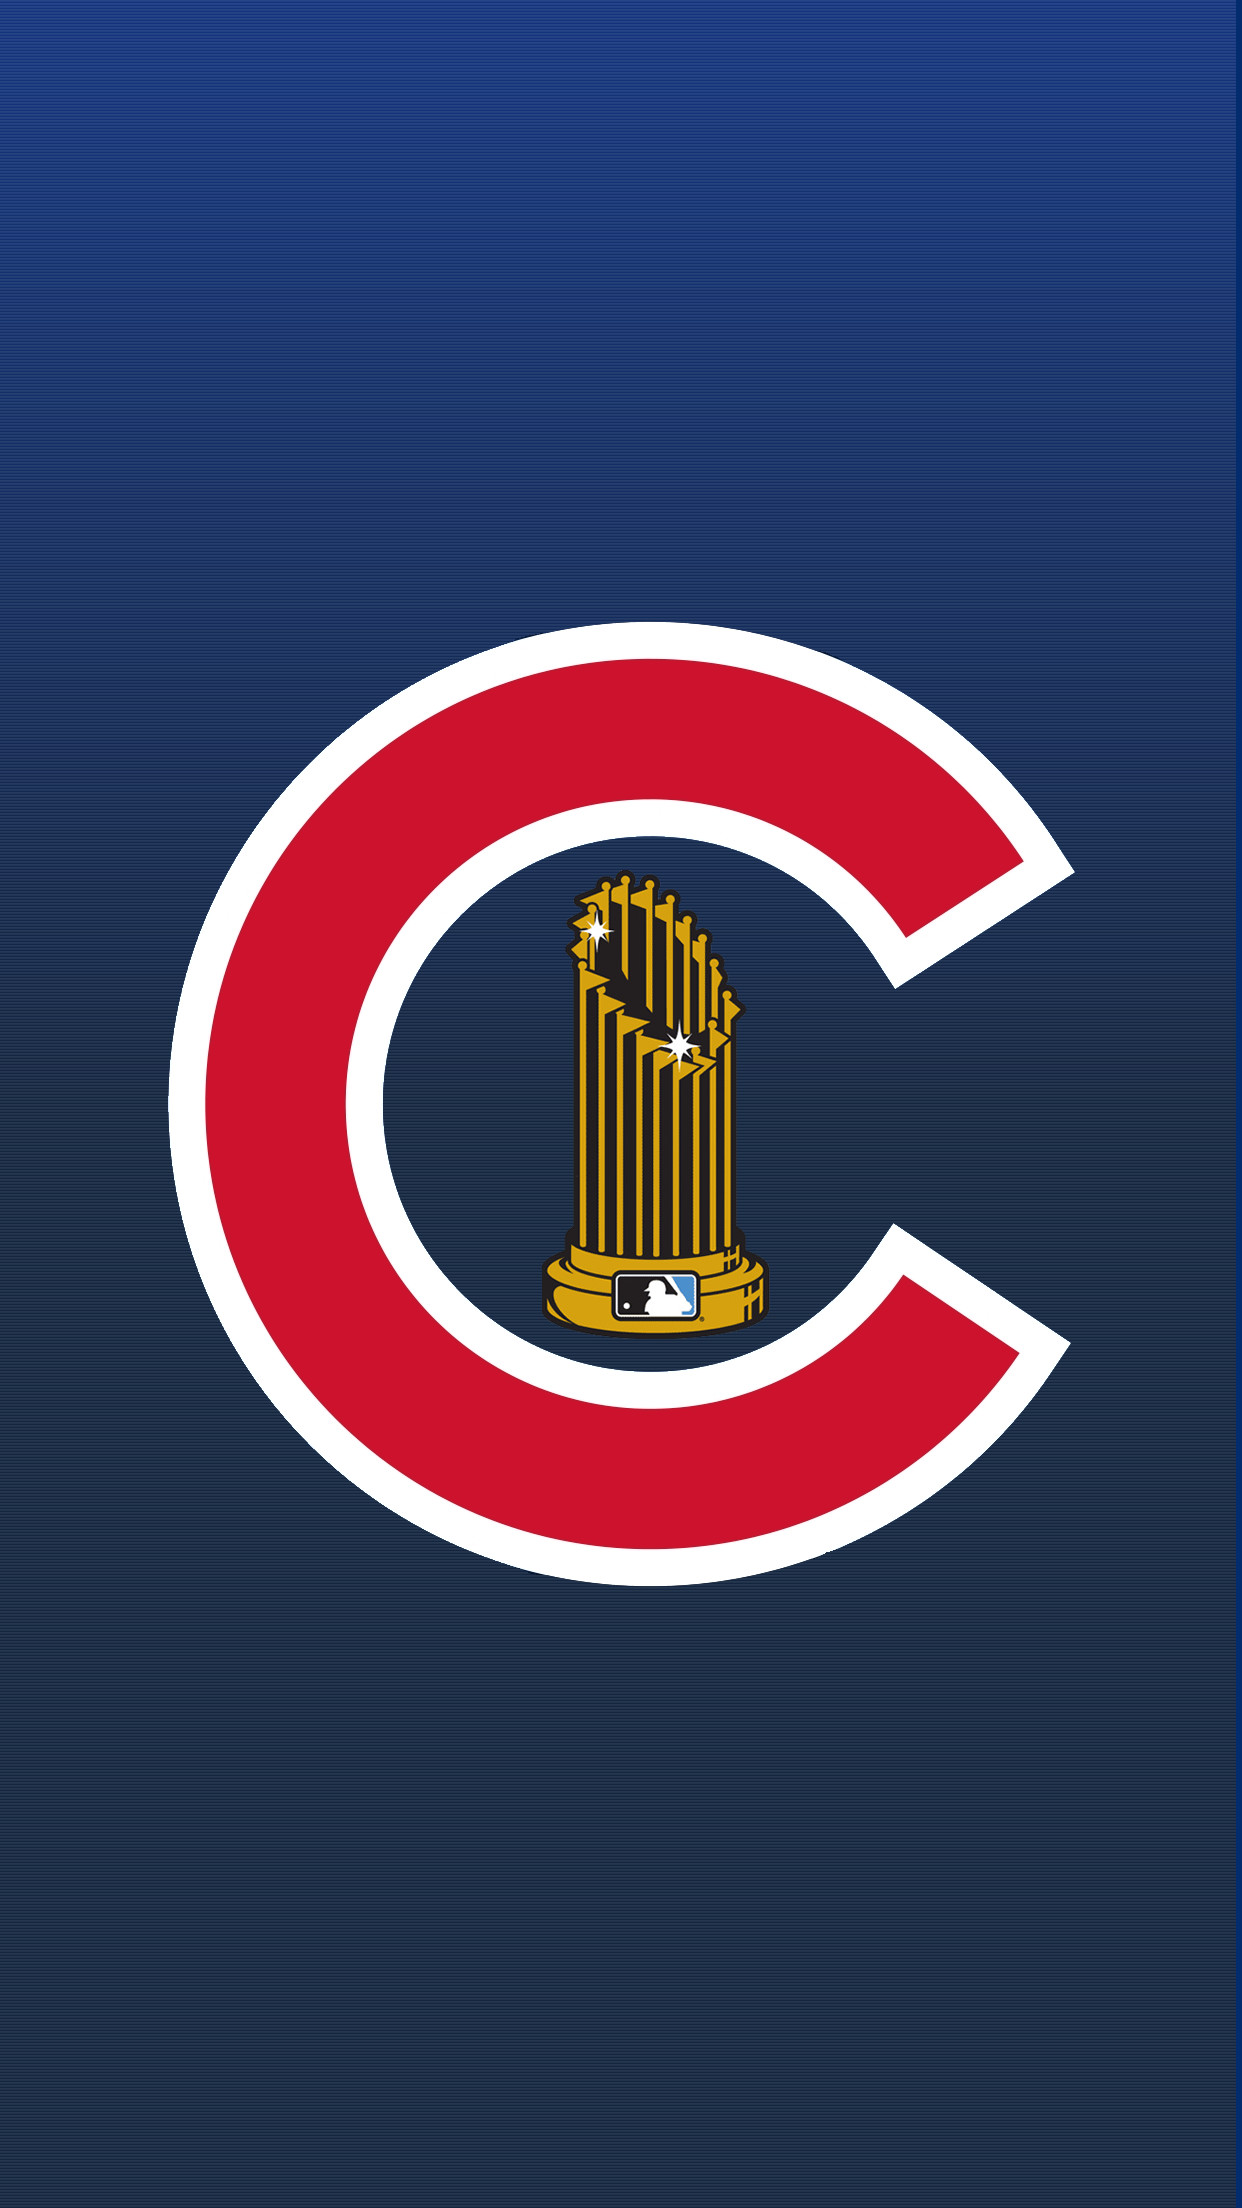 Chicago Cubs Wallpaper Hd 69 Images